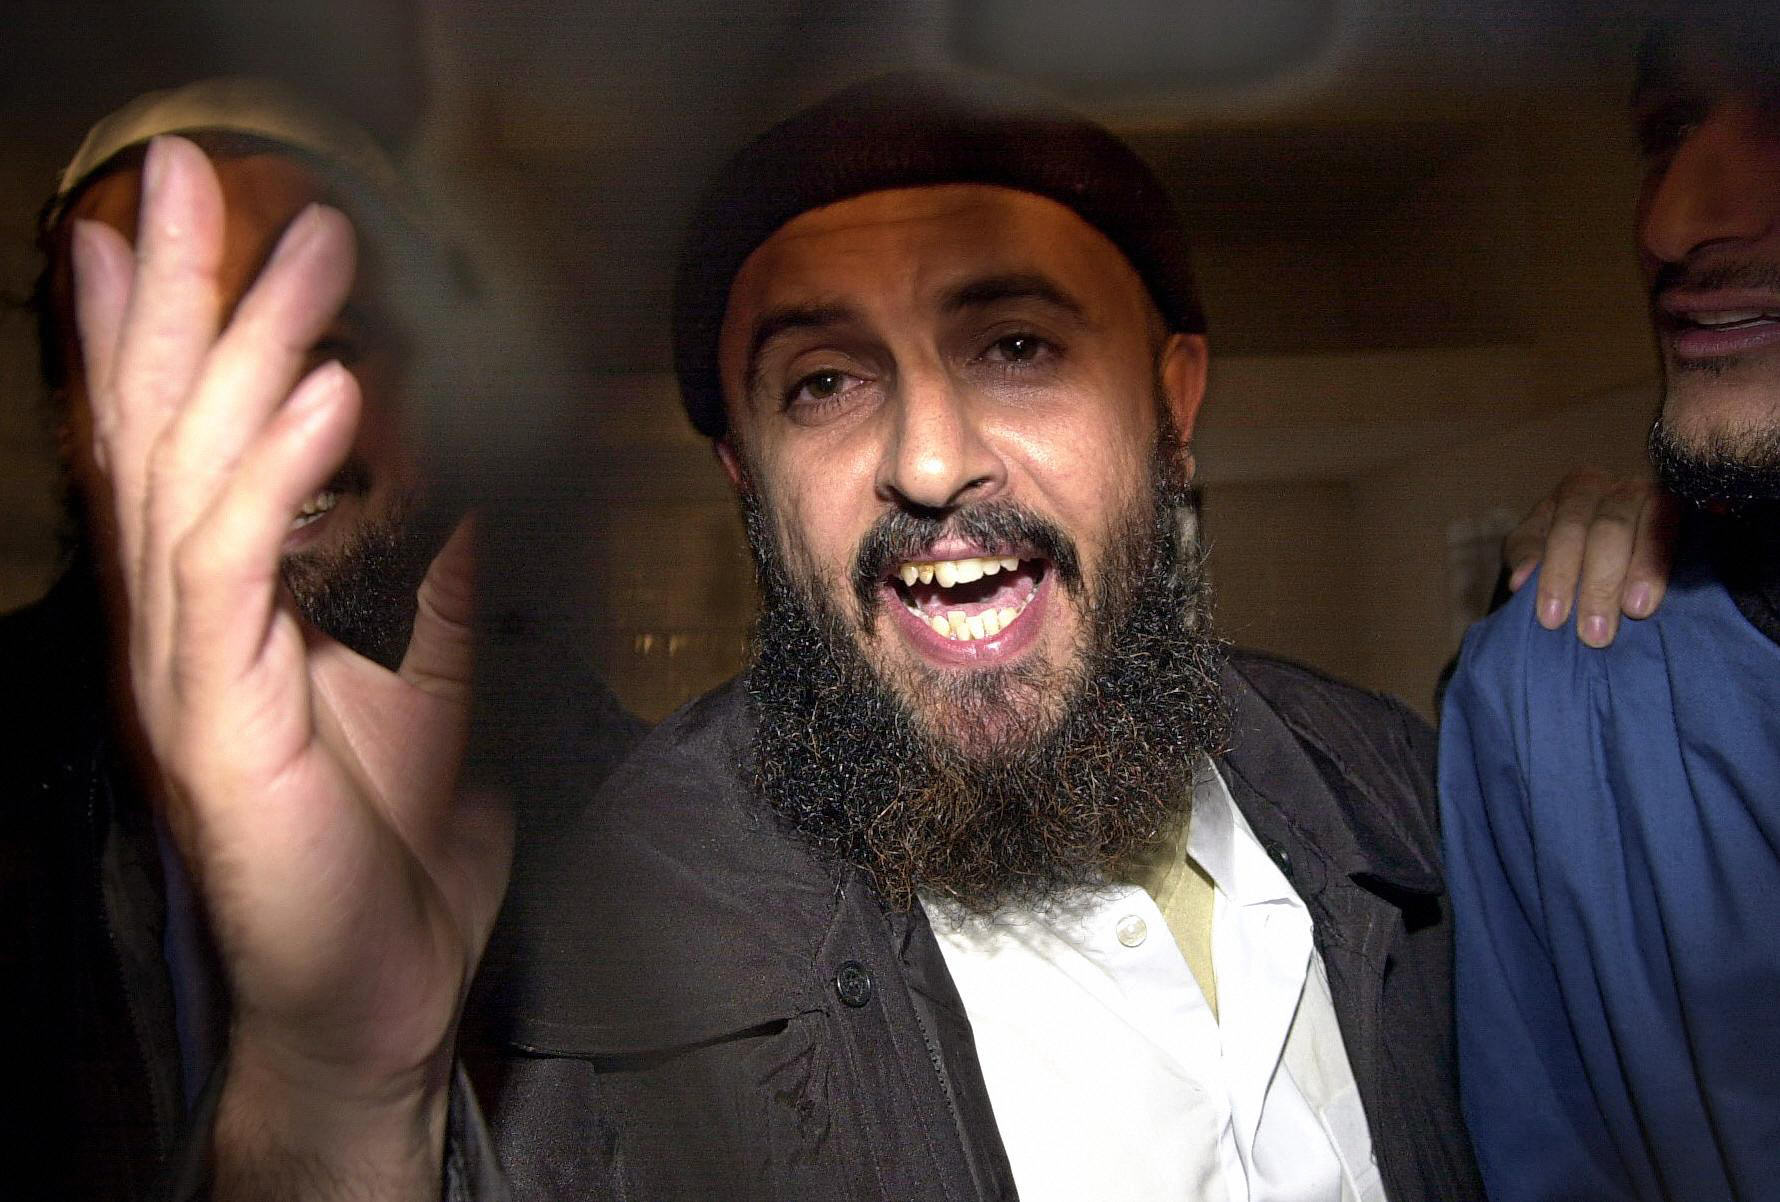 Jamal al-Badawi, one of the terrorist behind the bombing of the USS Cole destroyer's bombing in 2000 in the Yemeni port of Aden, was killed Tuesday in an airstrike. Here al-Badawi gestures after an appeal court announced his judgement to 15 years in prison on 26 February 2005. He later escaped from prison in 2006. (PKHALED FAZAA/AFP/Getty Images)